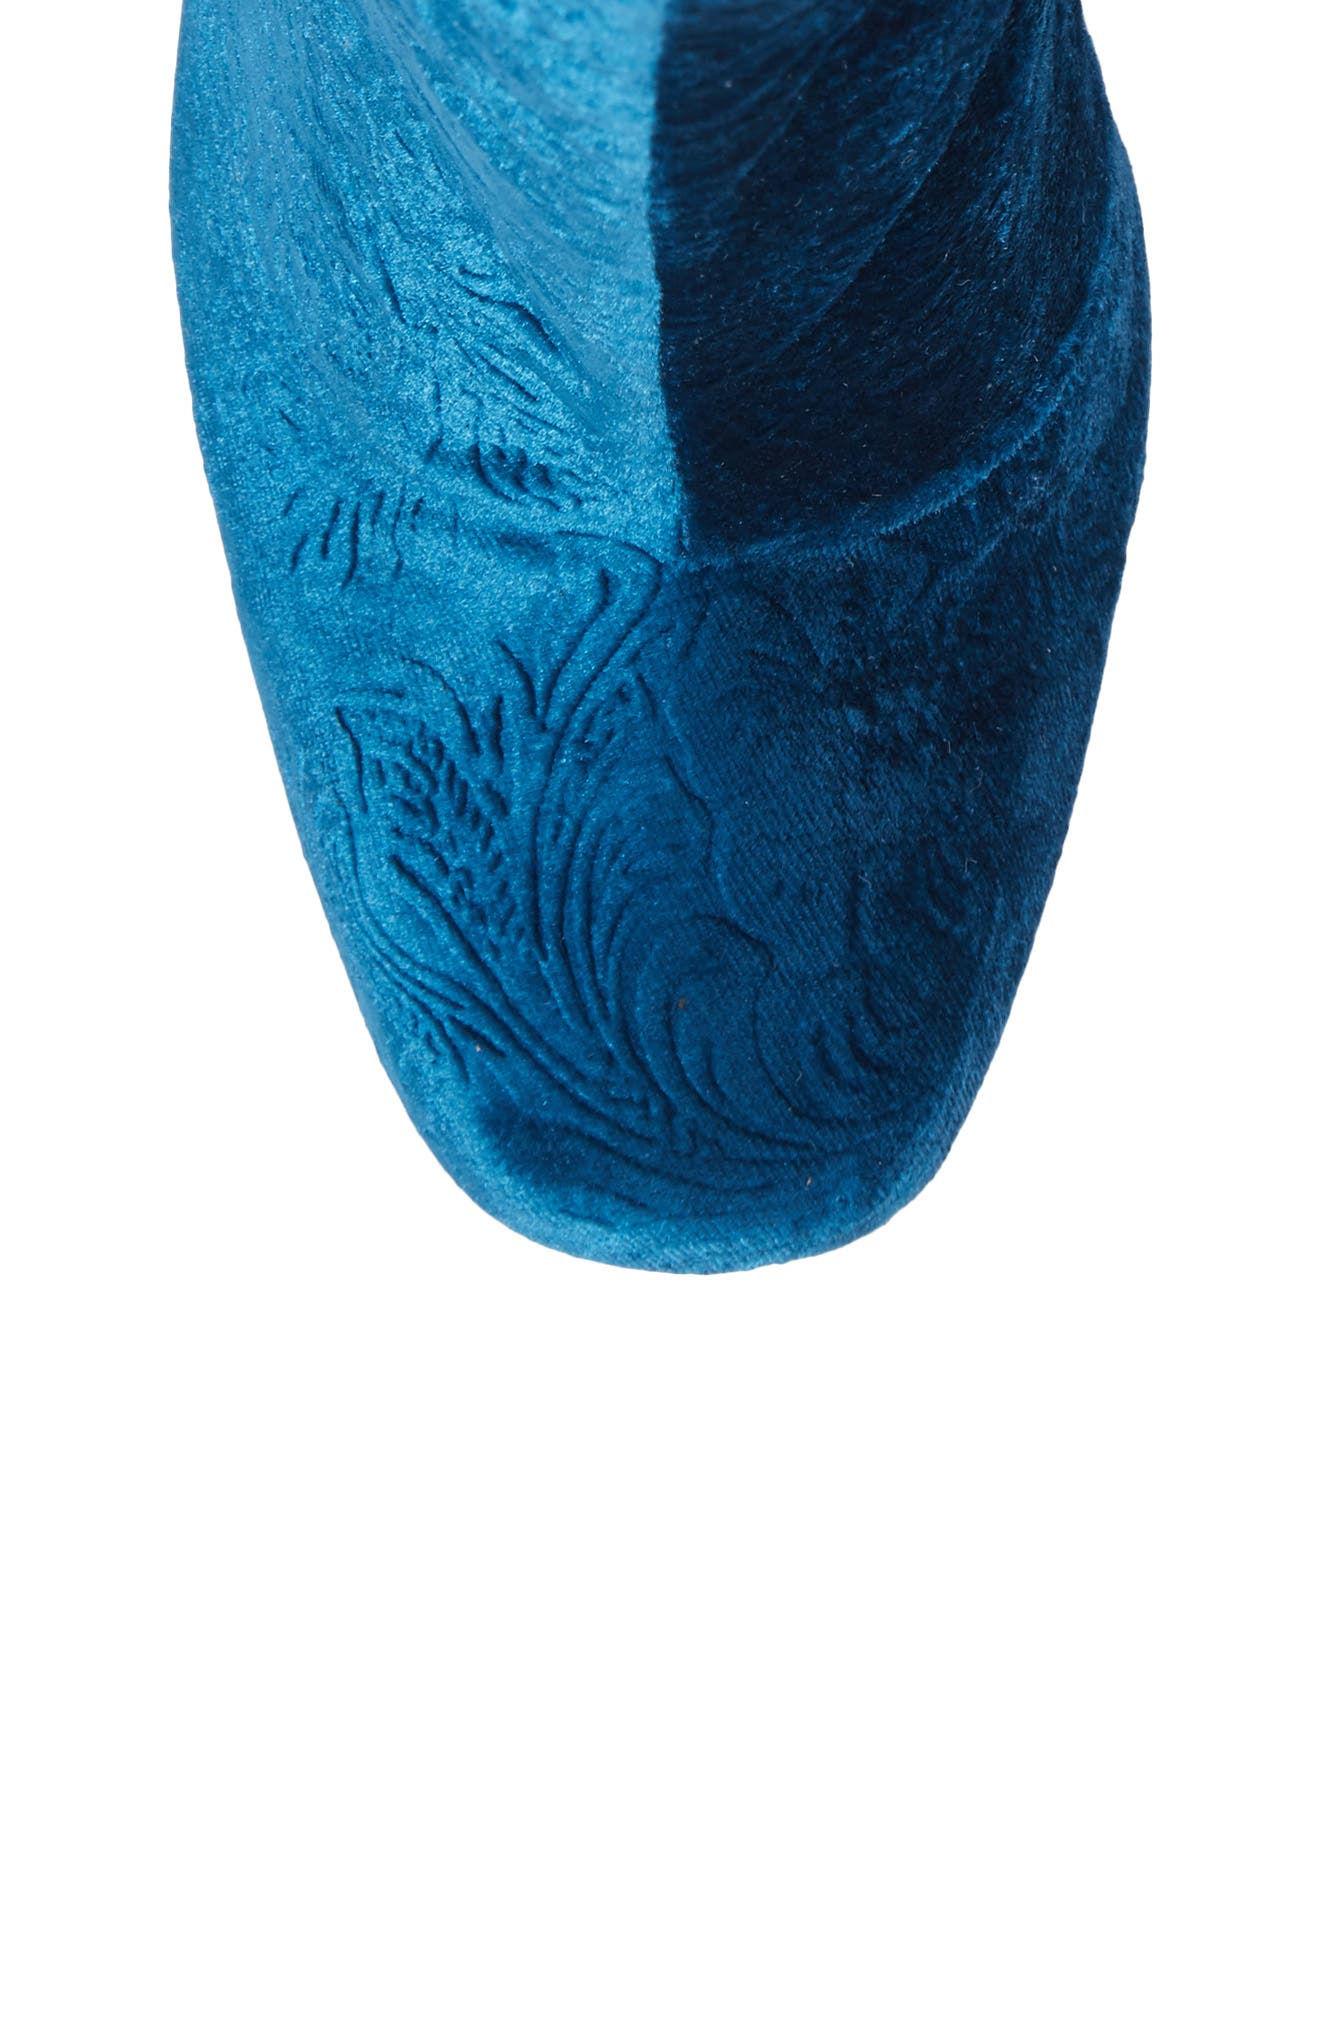 Nadonna Bootie,                             Alternate thumbnail 5, color,                             Teal Fabric